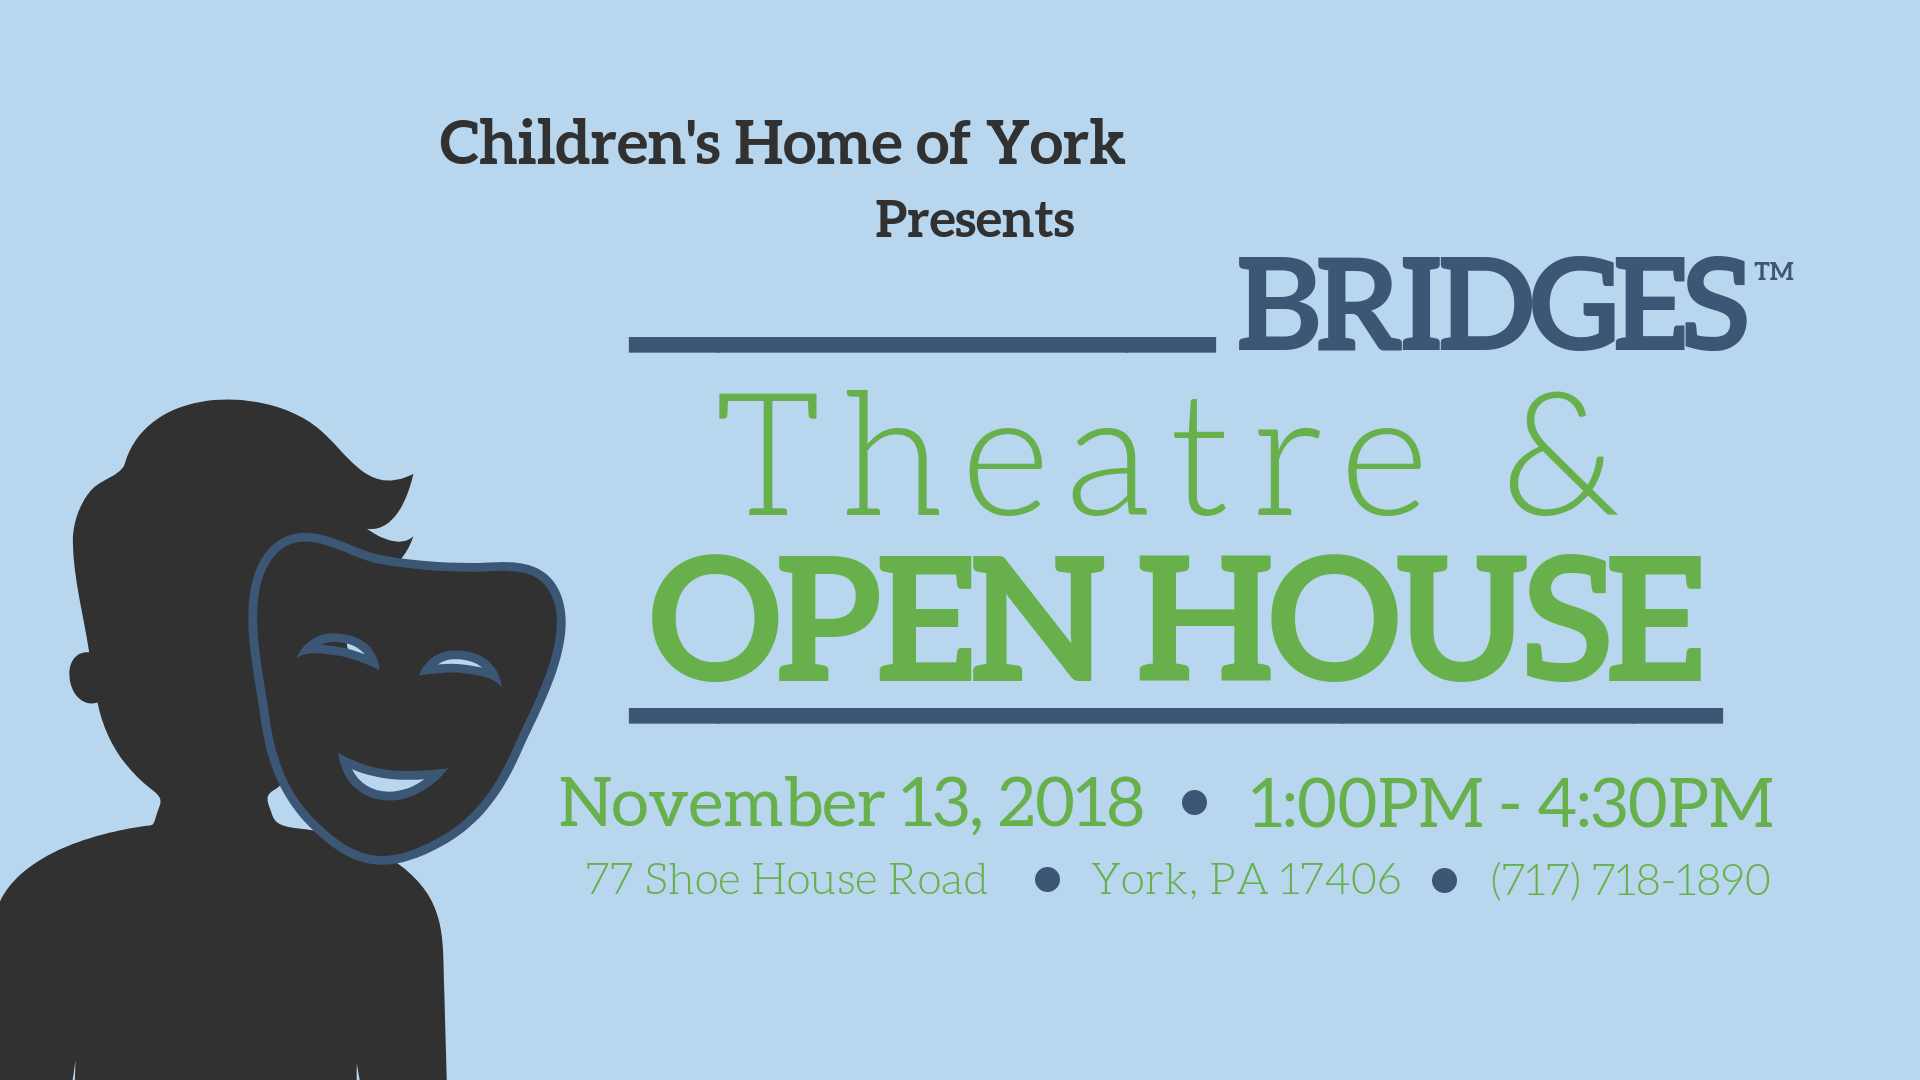 BRIDGES™ Theatre & Open House